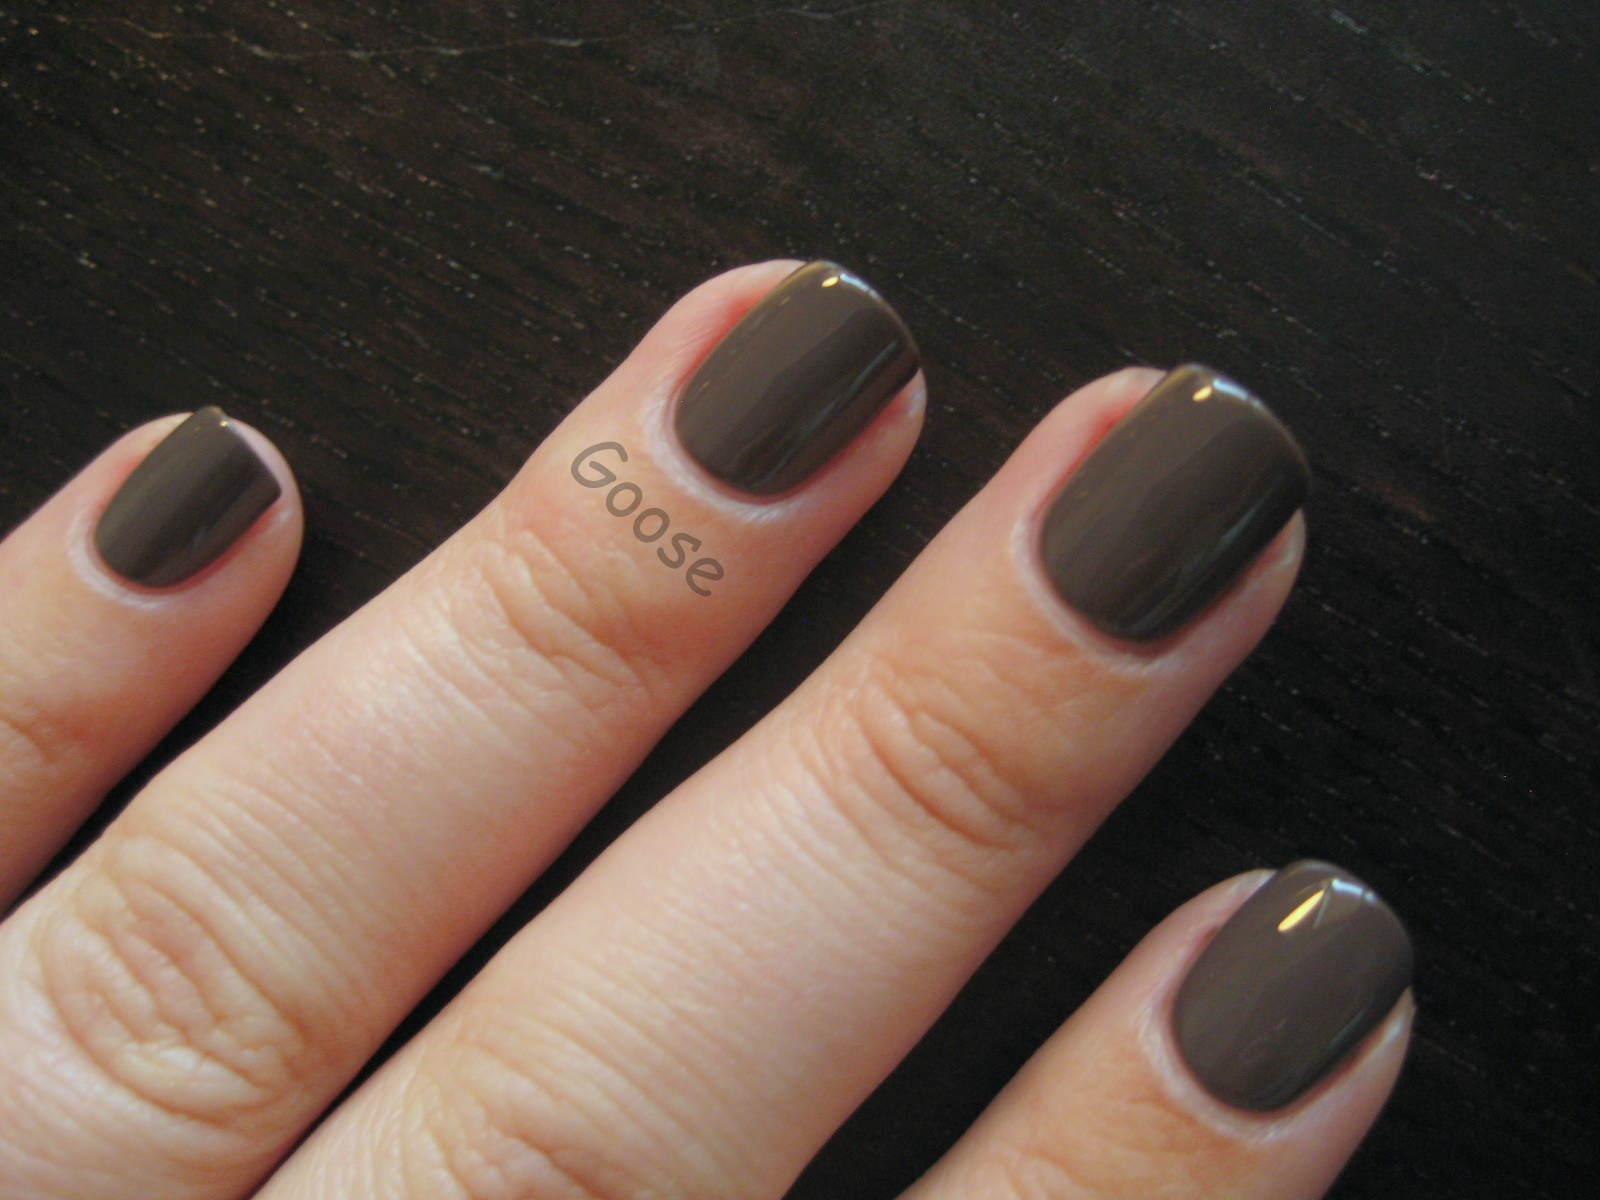 Goose\'s Glitter: New Nail Shape + Old Favorite